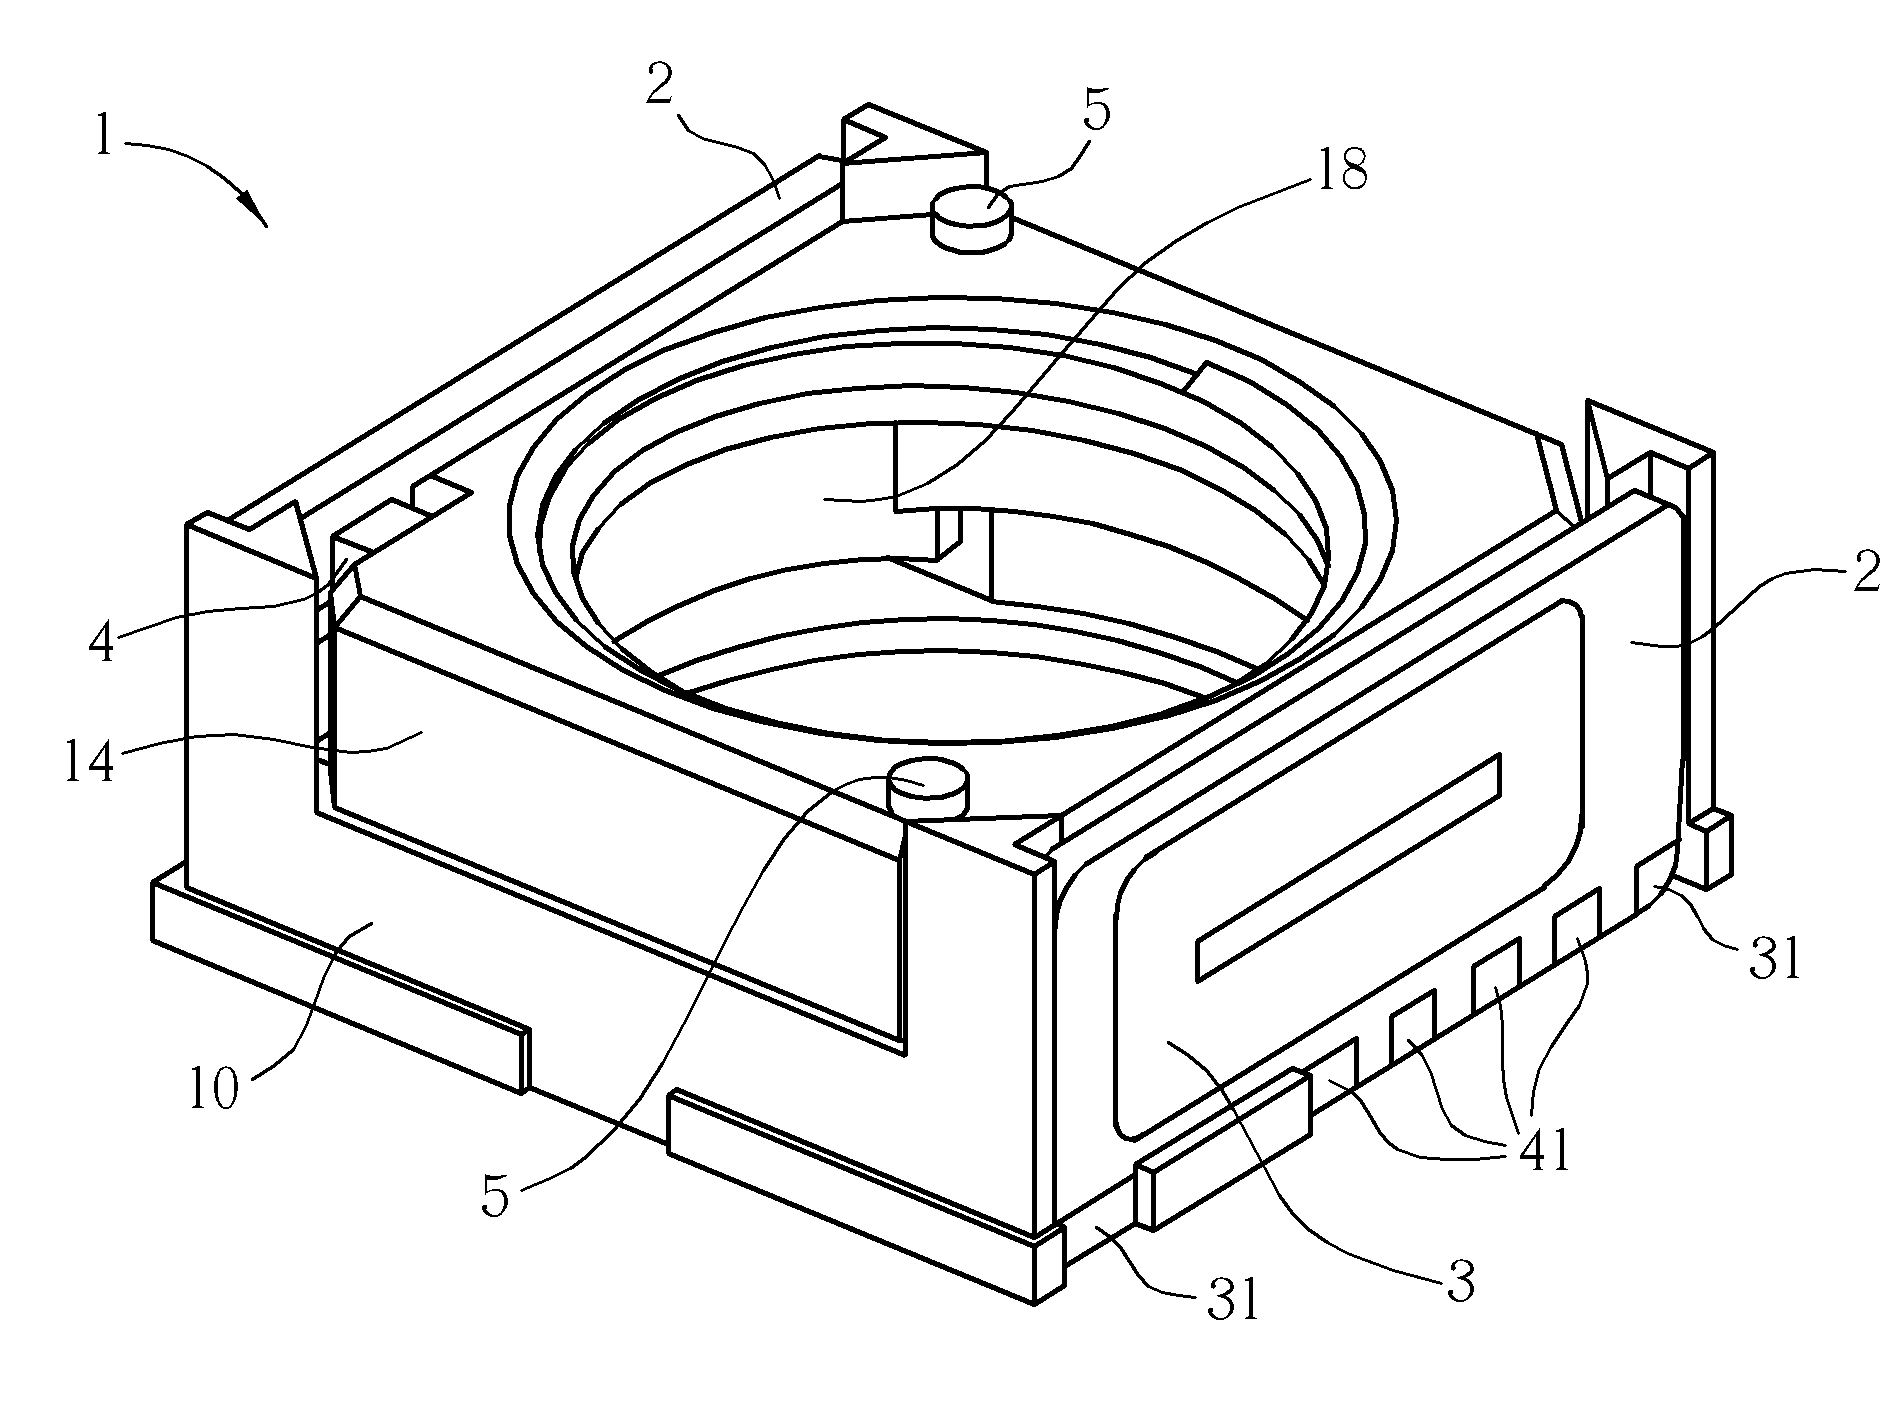 patent us7932645 - voice coil motor with surface coil